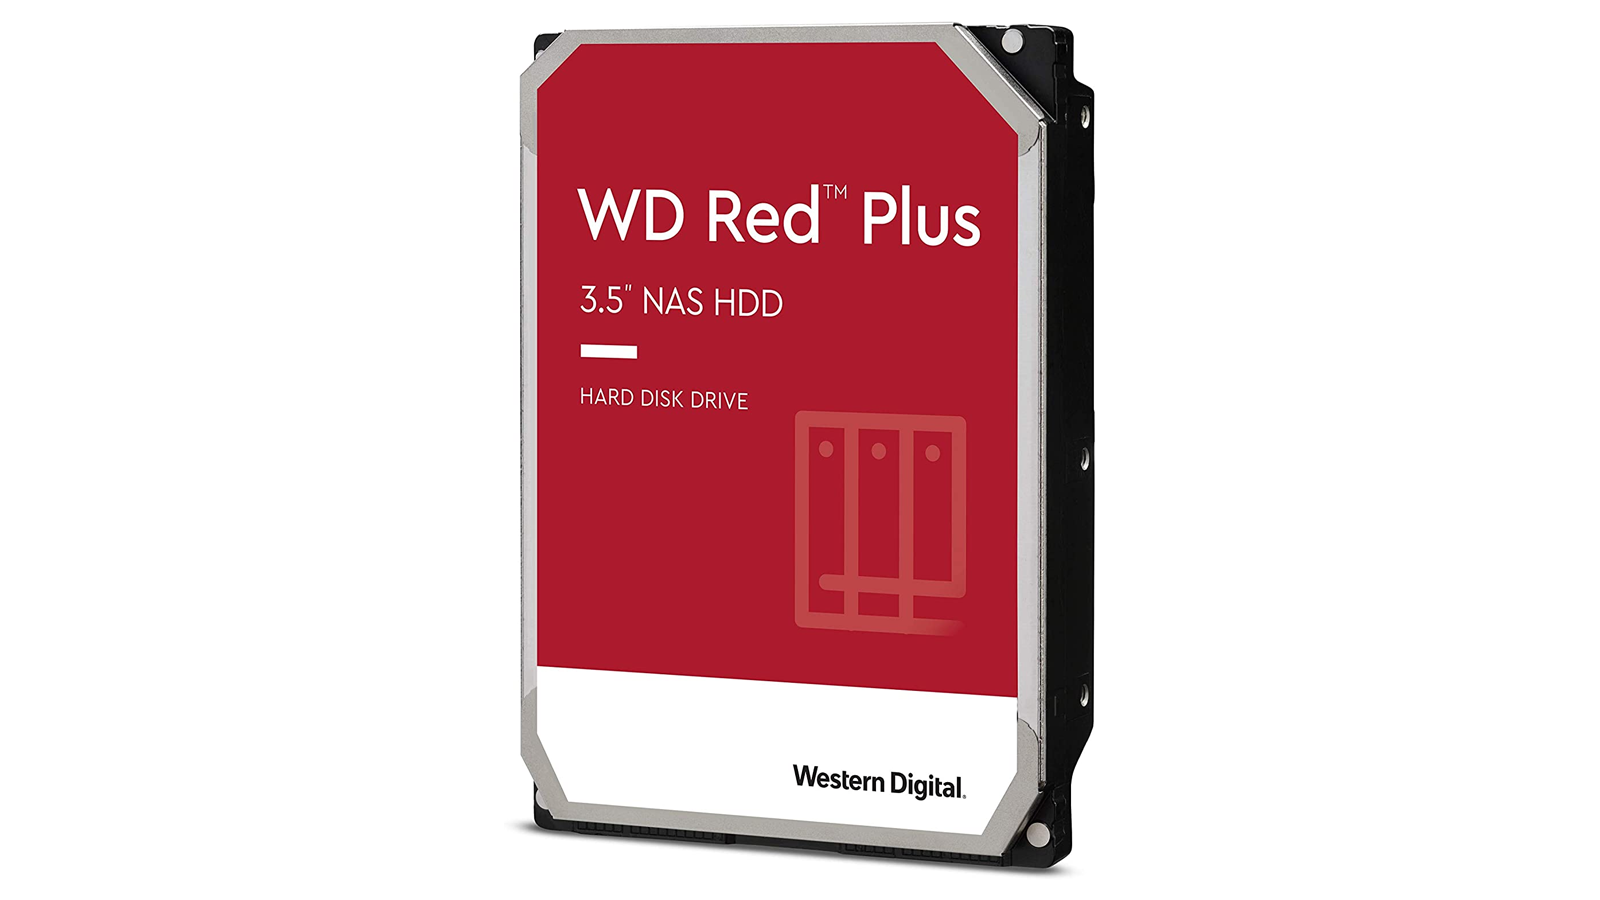 A photo of the WD Red Plus 3.5-inch NAS HDD.